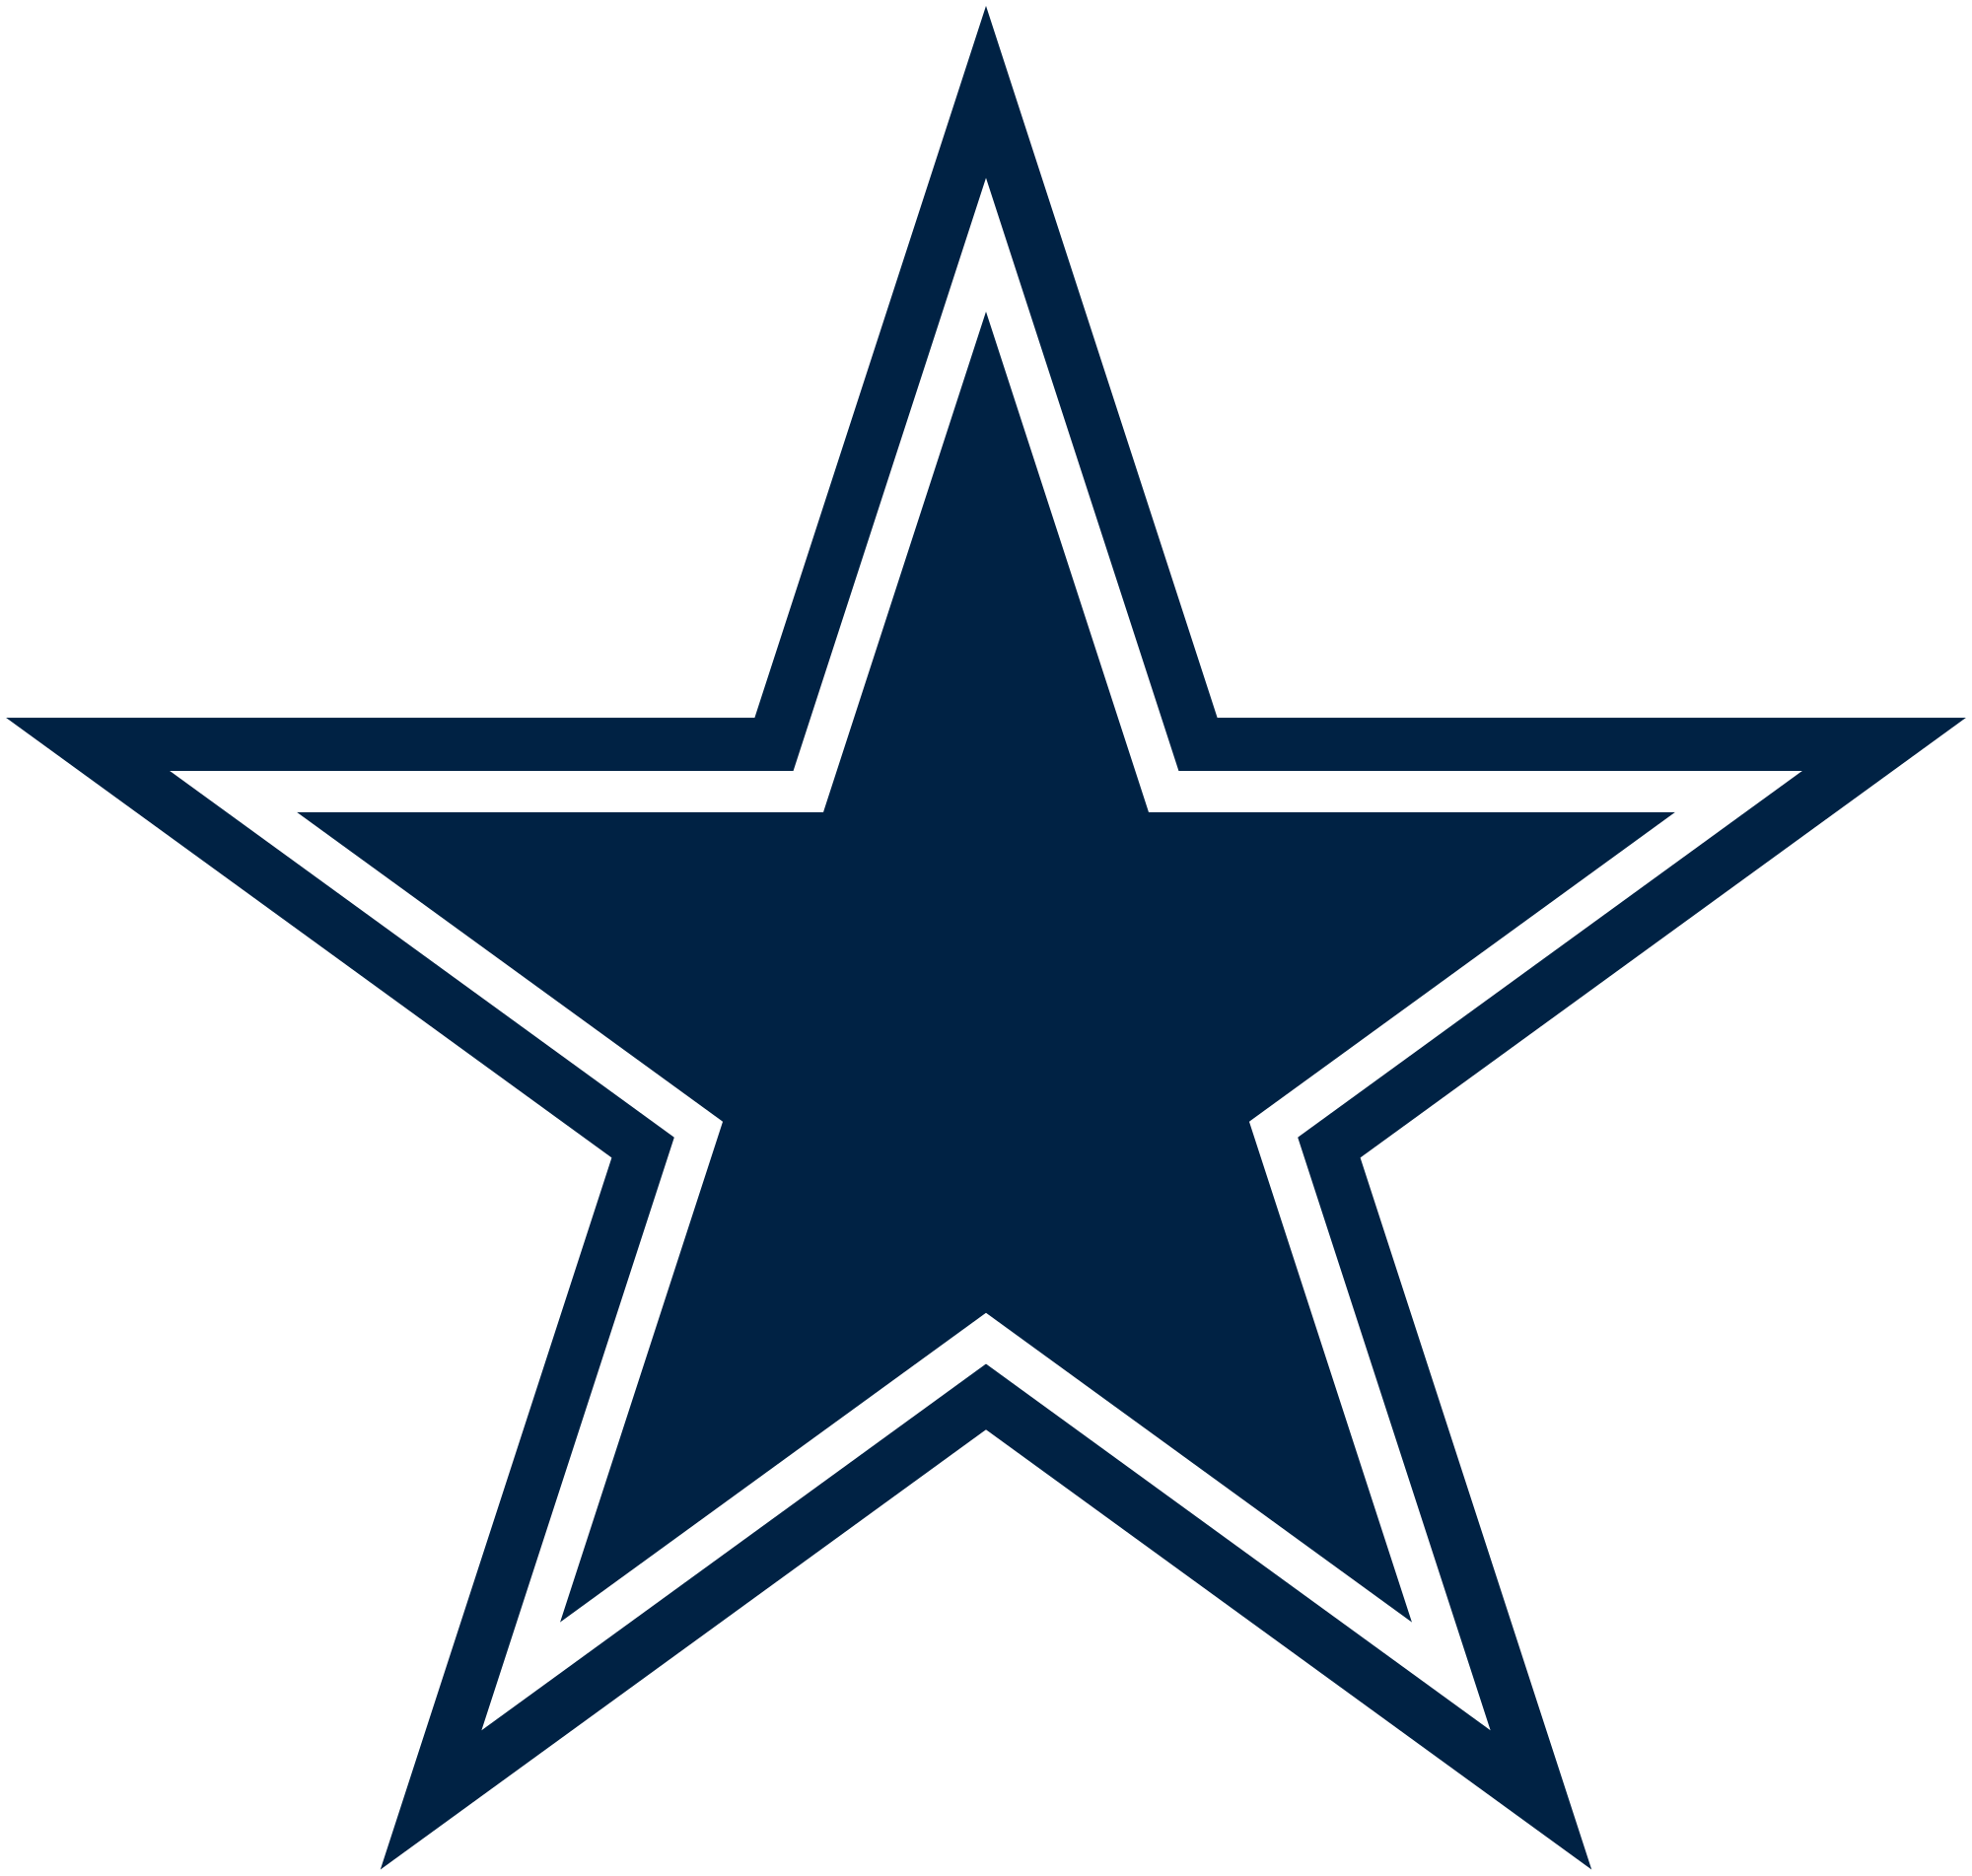 Hq png transparent images. Dallas cowboys clipart high resolution